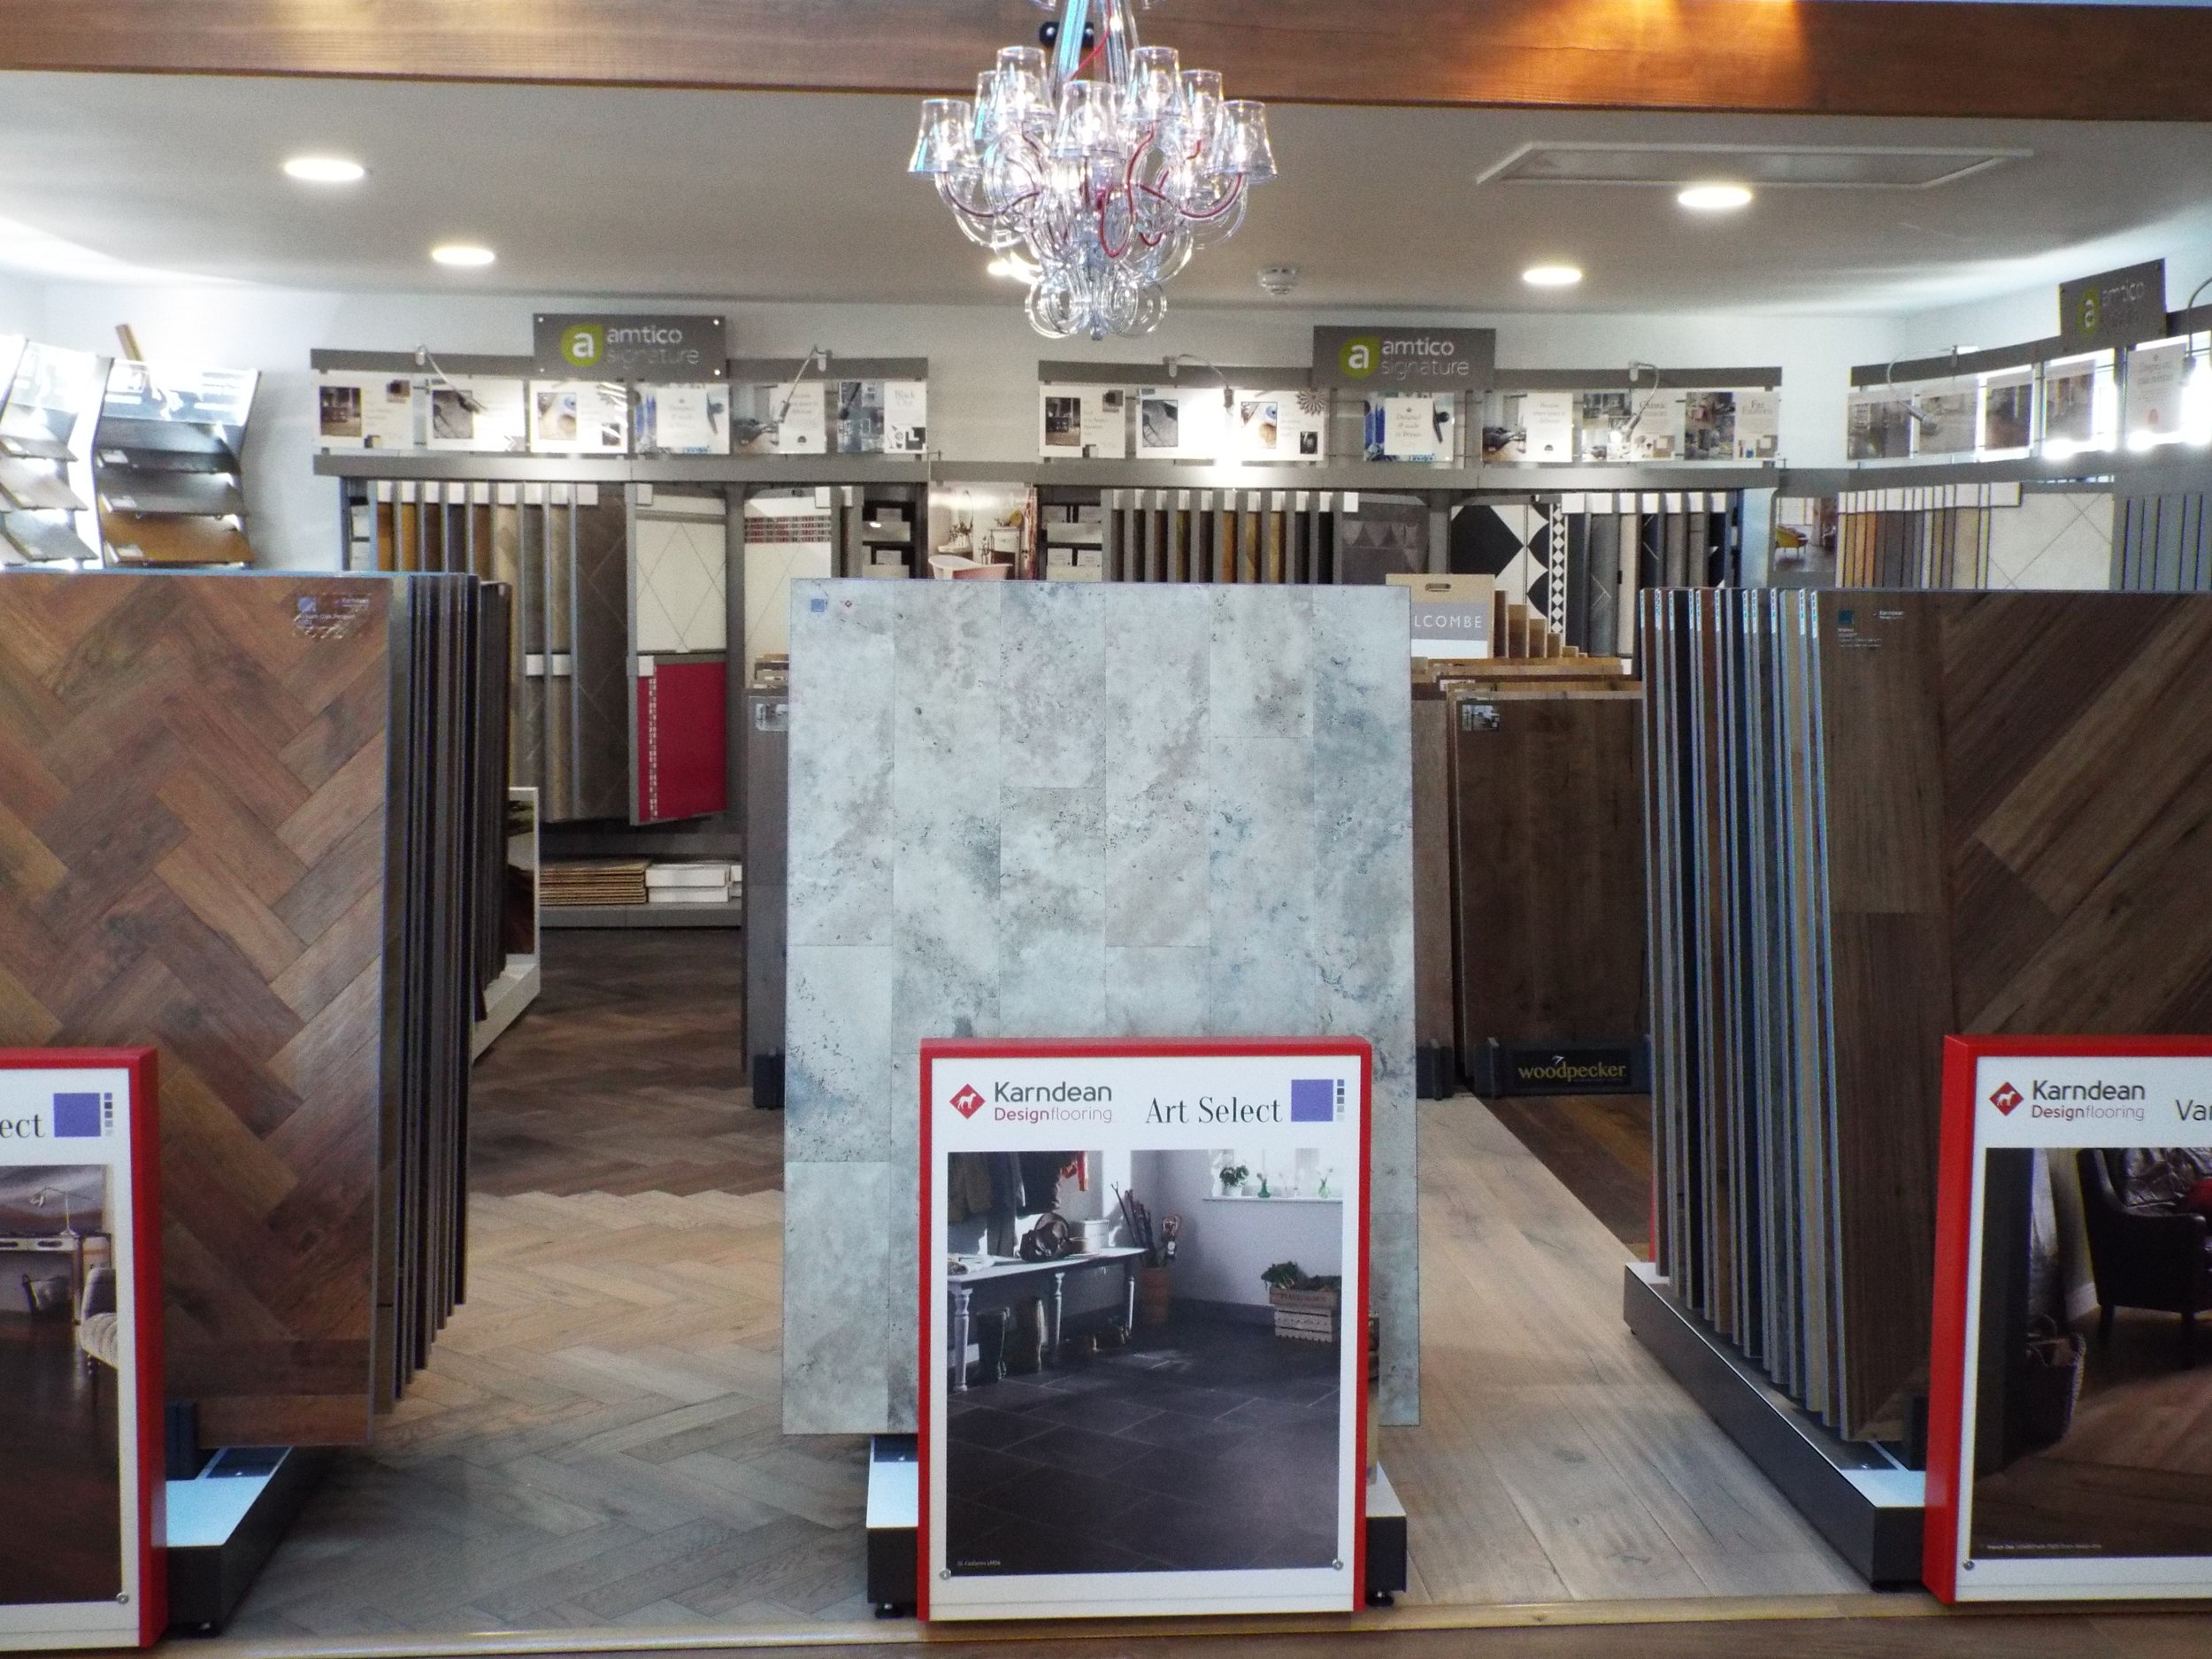 Some of the Karndean display boards in our showroom